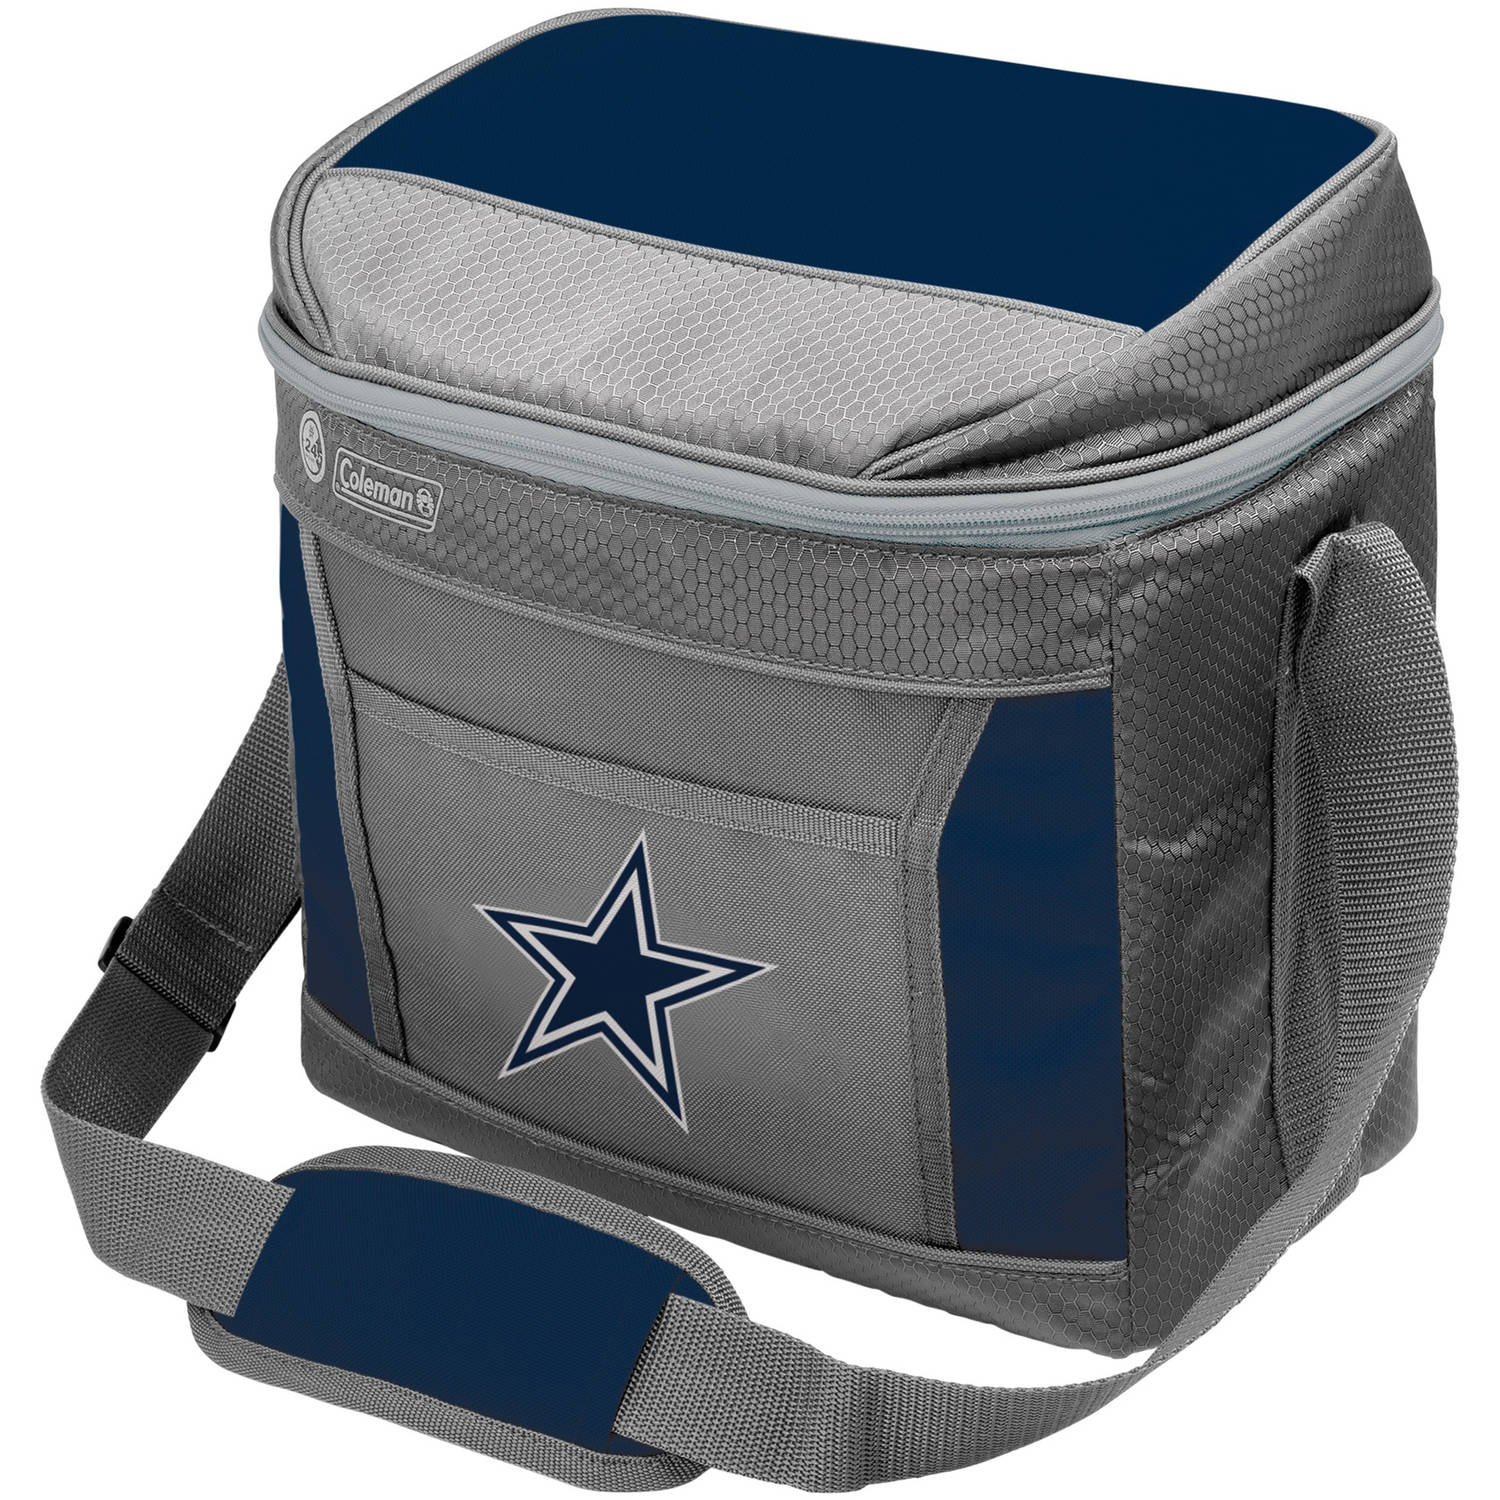 Coleman NFL 16-Can Soft-Sided Cooler, Dallas